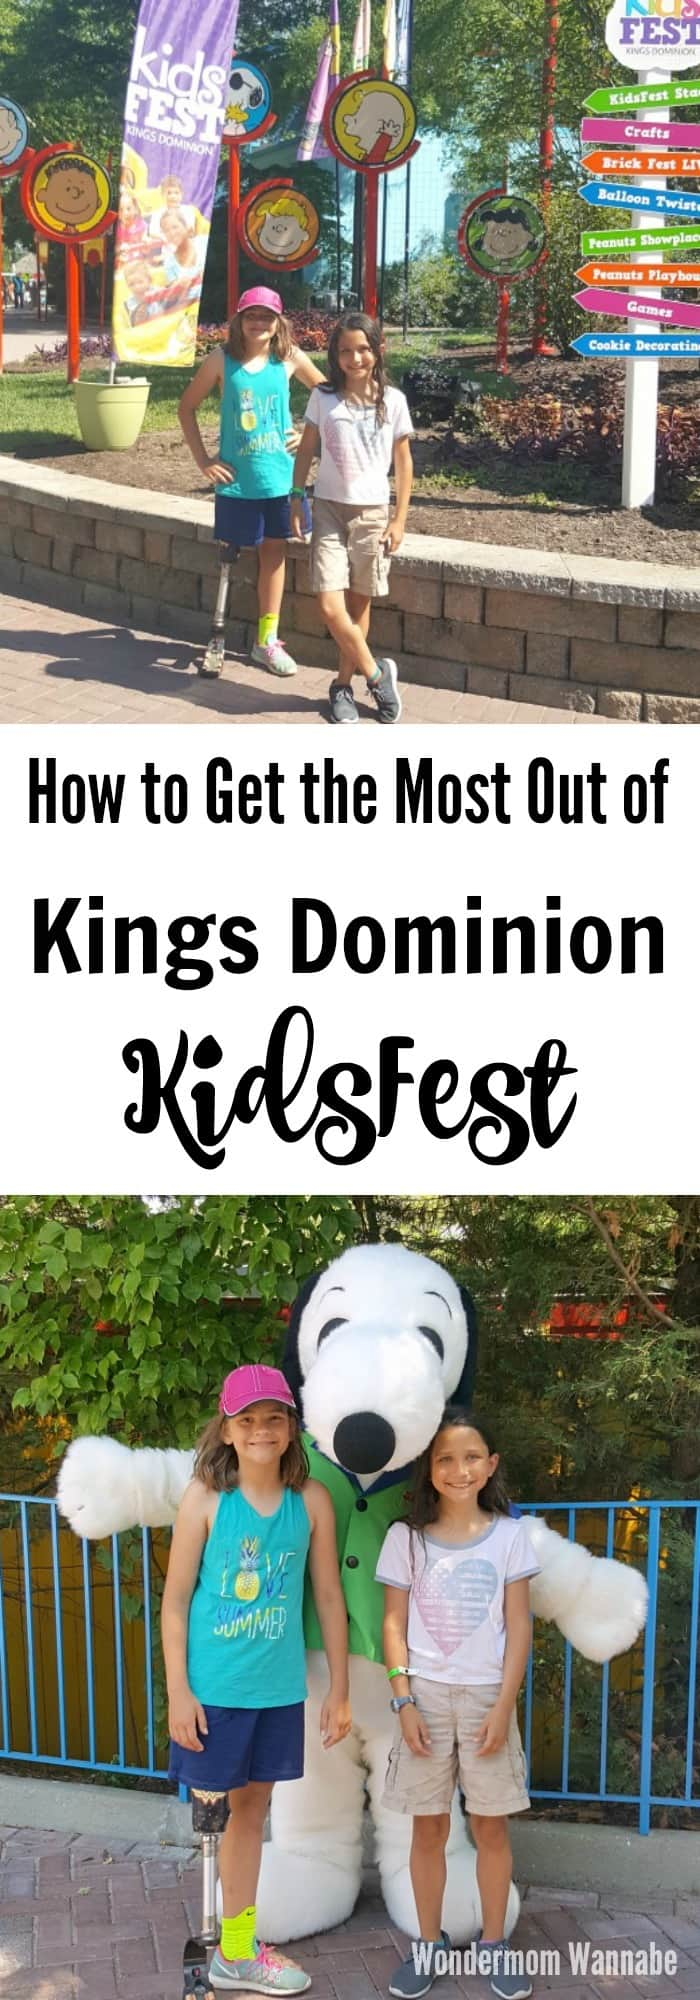 If you're planning a trip to Kings Dominion KidsFest, follow these tips to make sure you don't miss any of the fun activities. #kingsdominion #kidsfest #familyfun #funactivities via @wondermomwannab